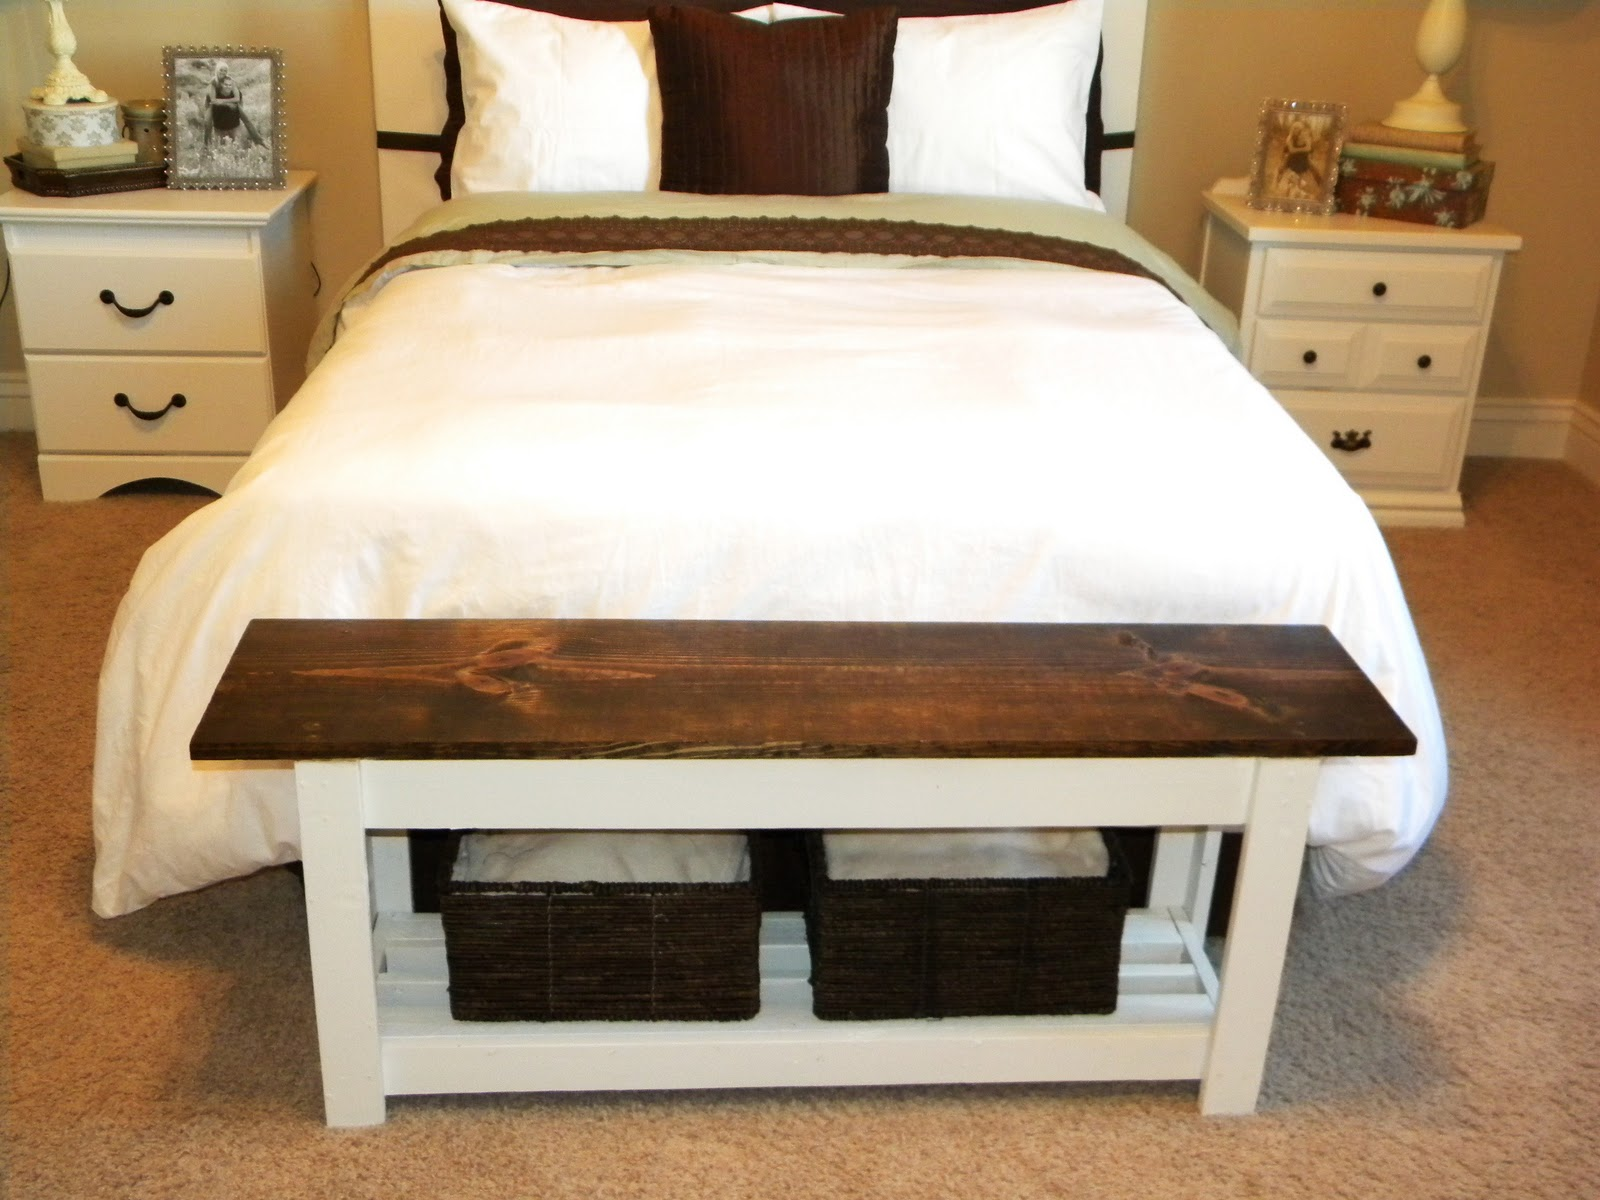 Diy End Of Bed Bench | Home Design Ideas, Pictures, Remodel and Decor